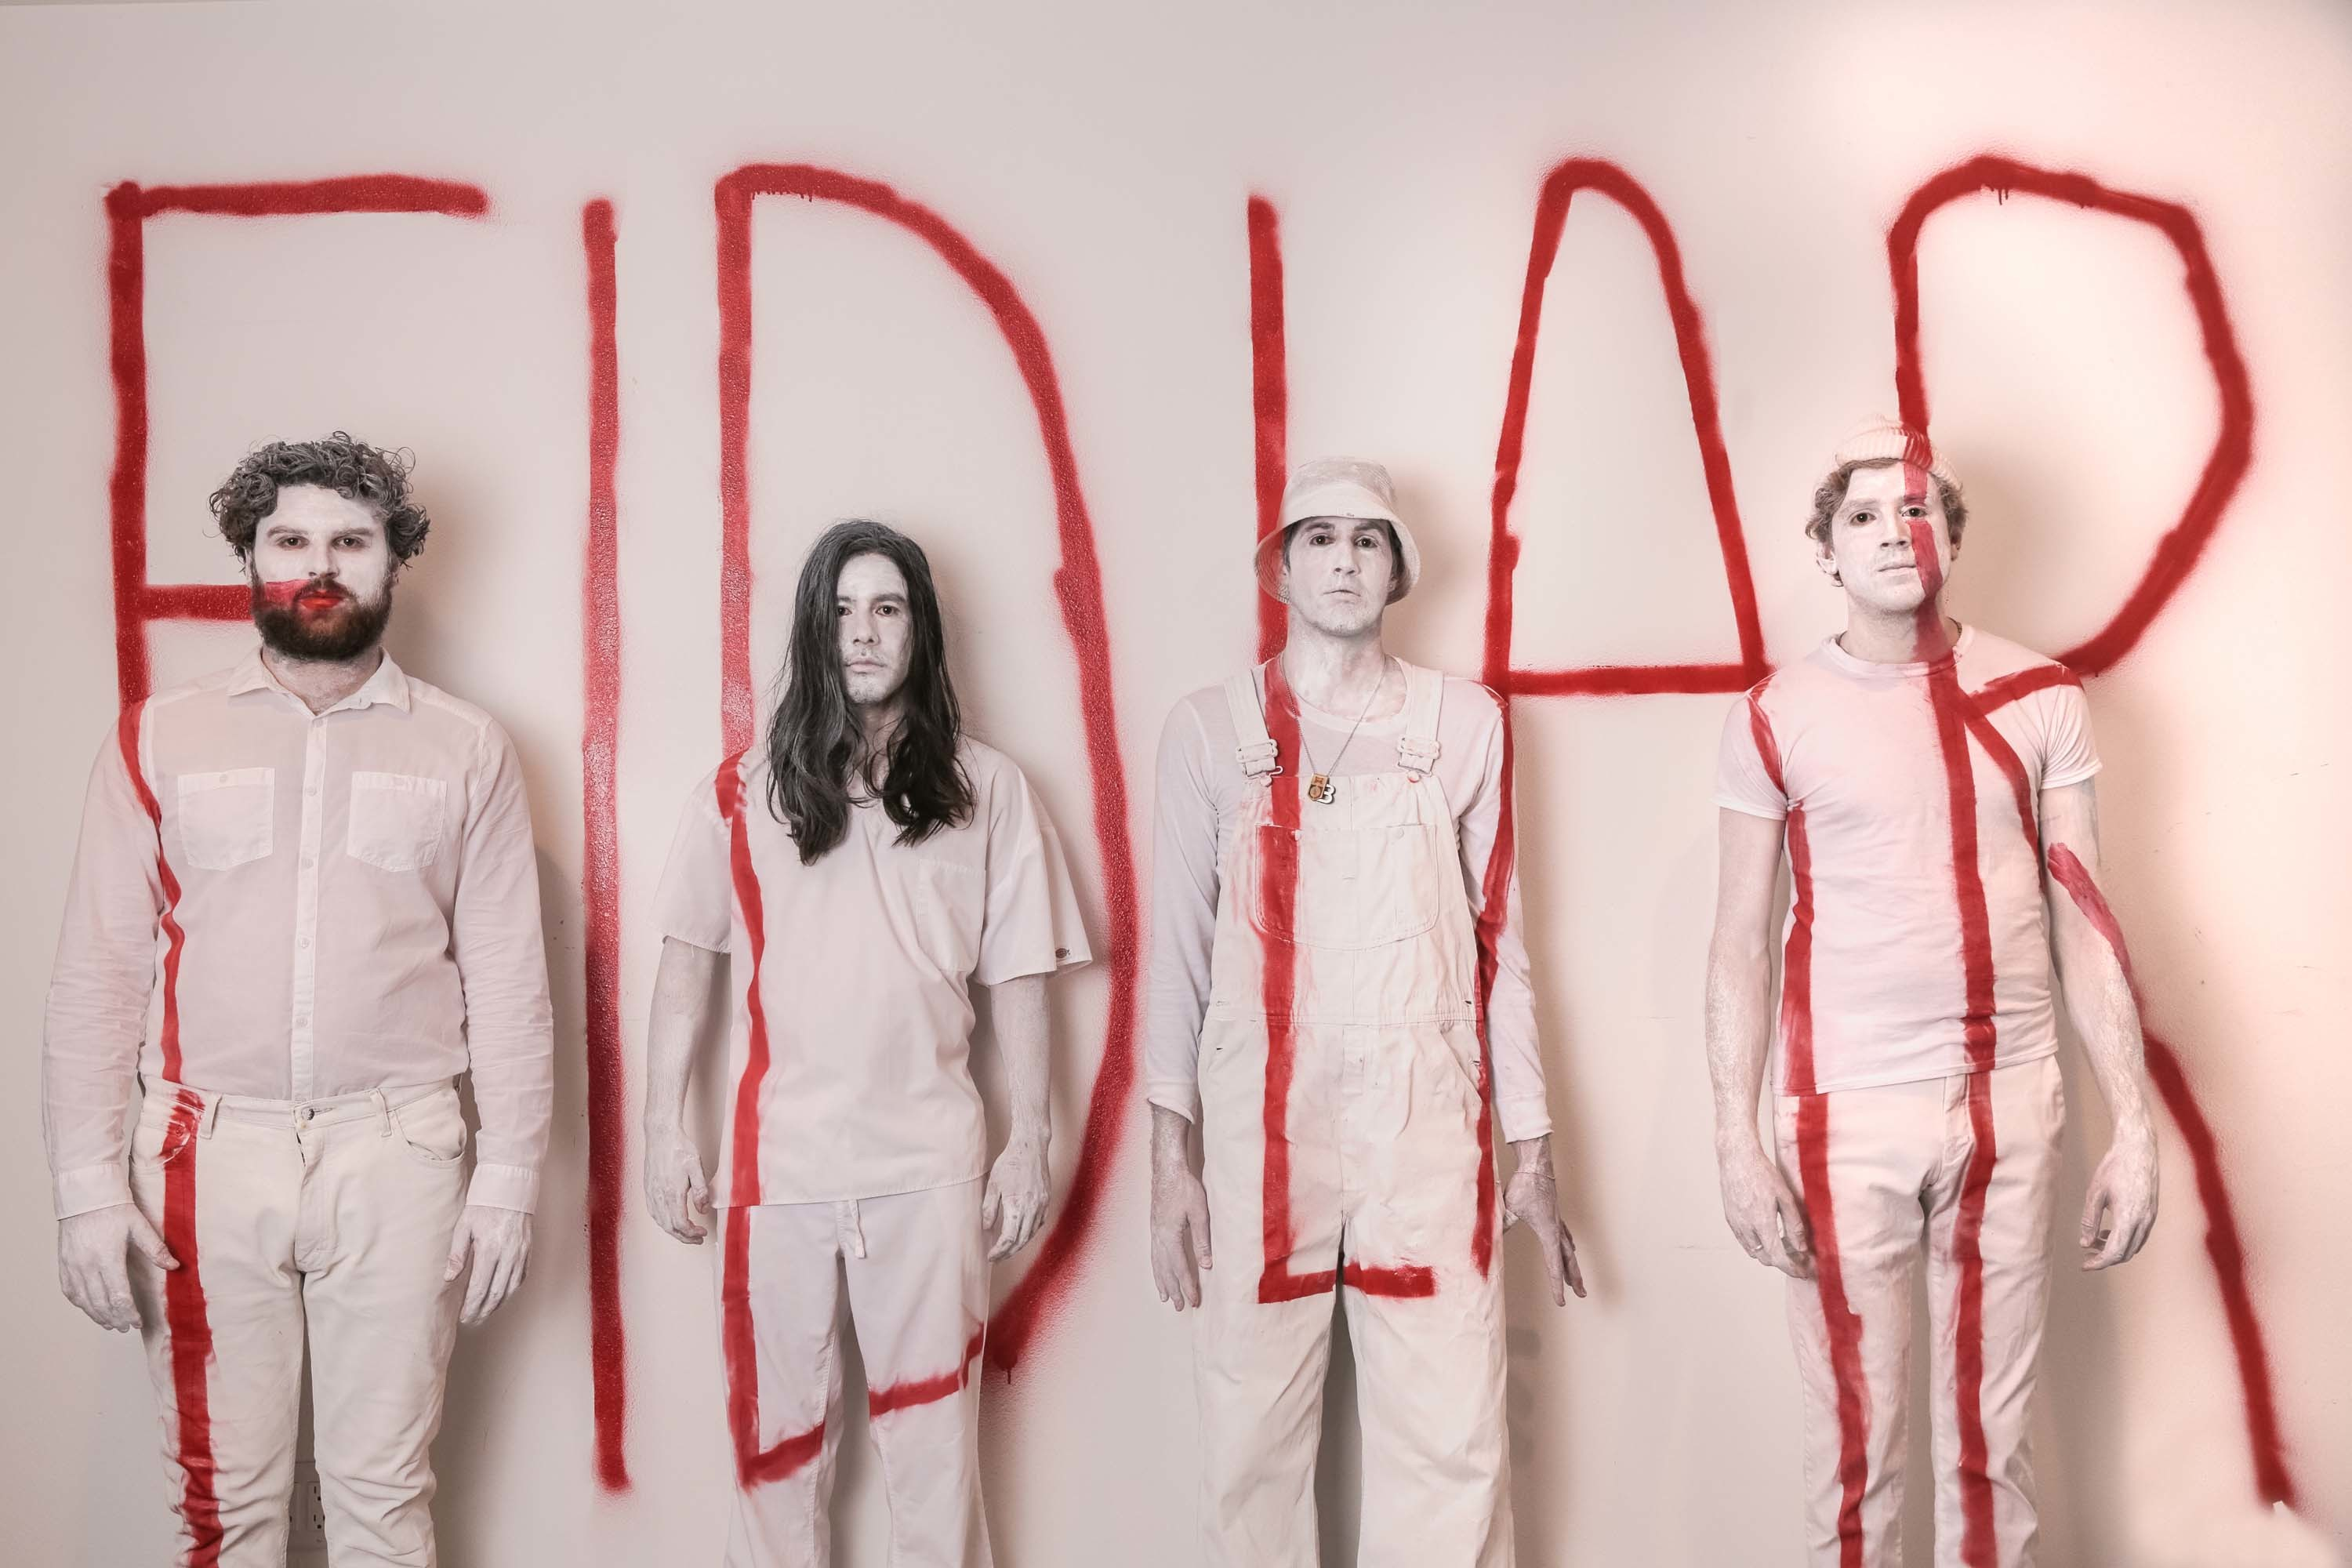 FIDLAR are back with new song 'Are You High?'